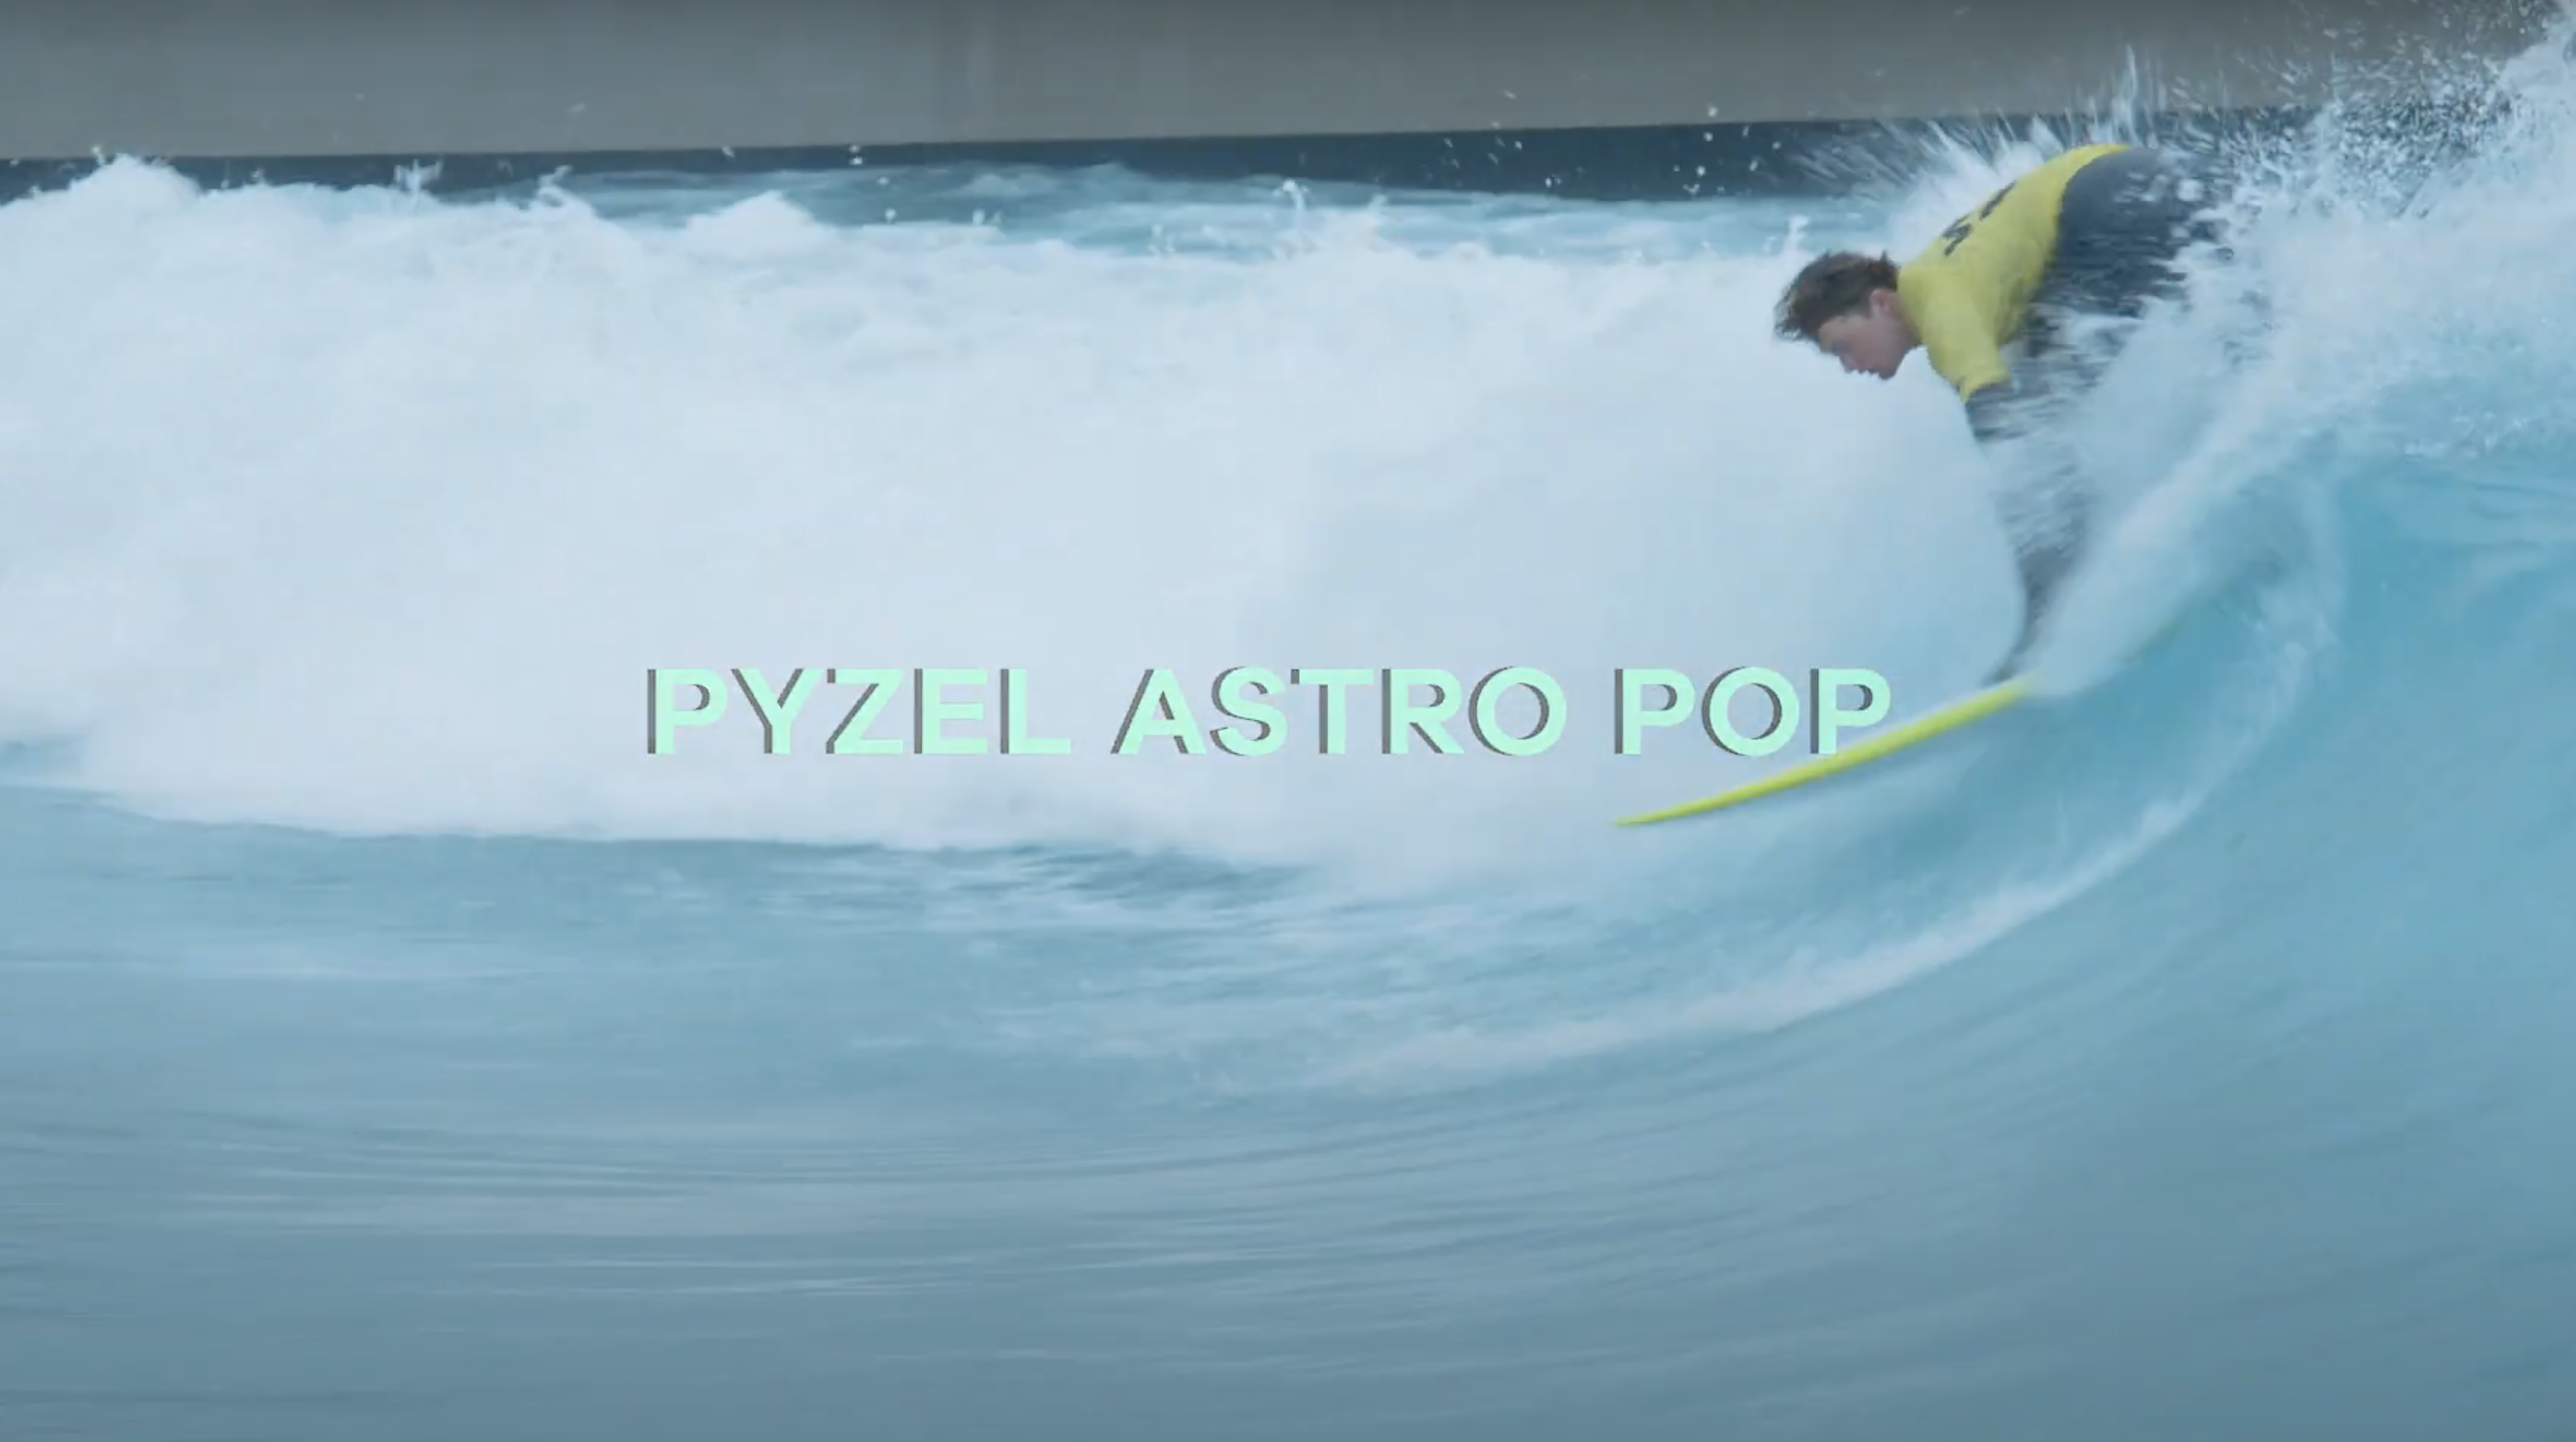 Pyzel Astro Pop Surfboard Review | The Test Tub